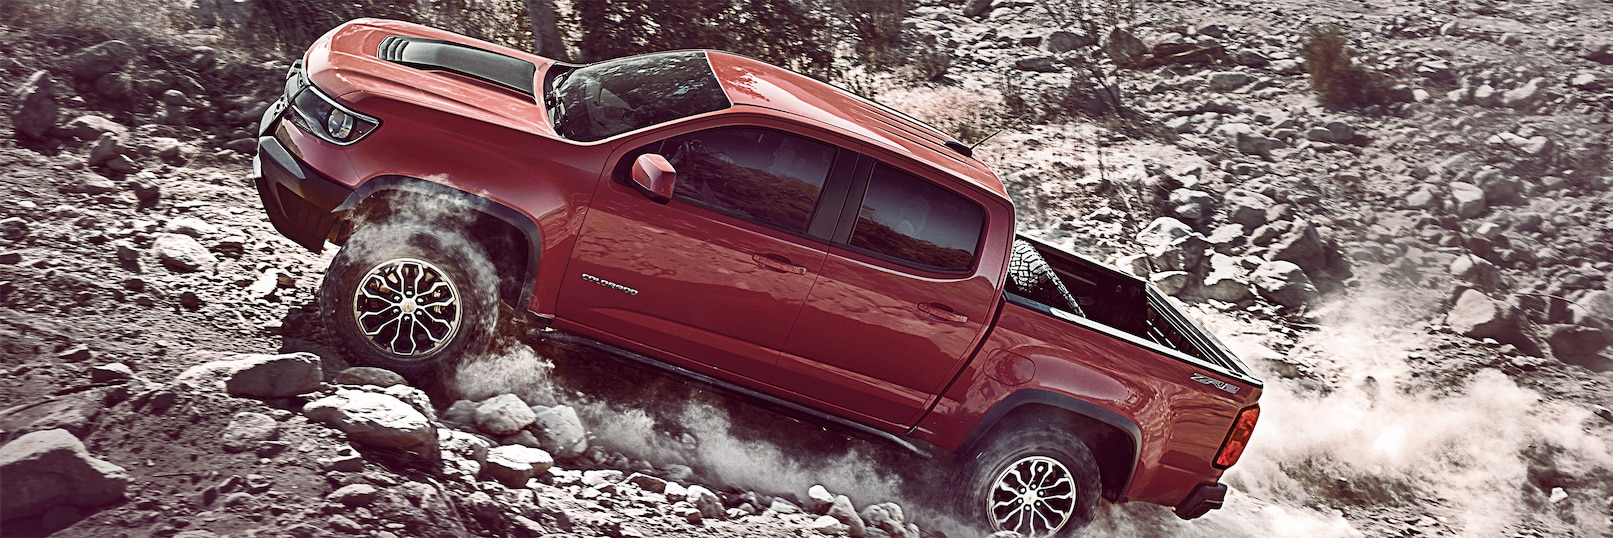 Chevy Colorado Accessories >> How To Make the Most of Your Chevy Colorado ZR2